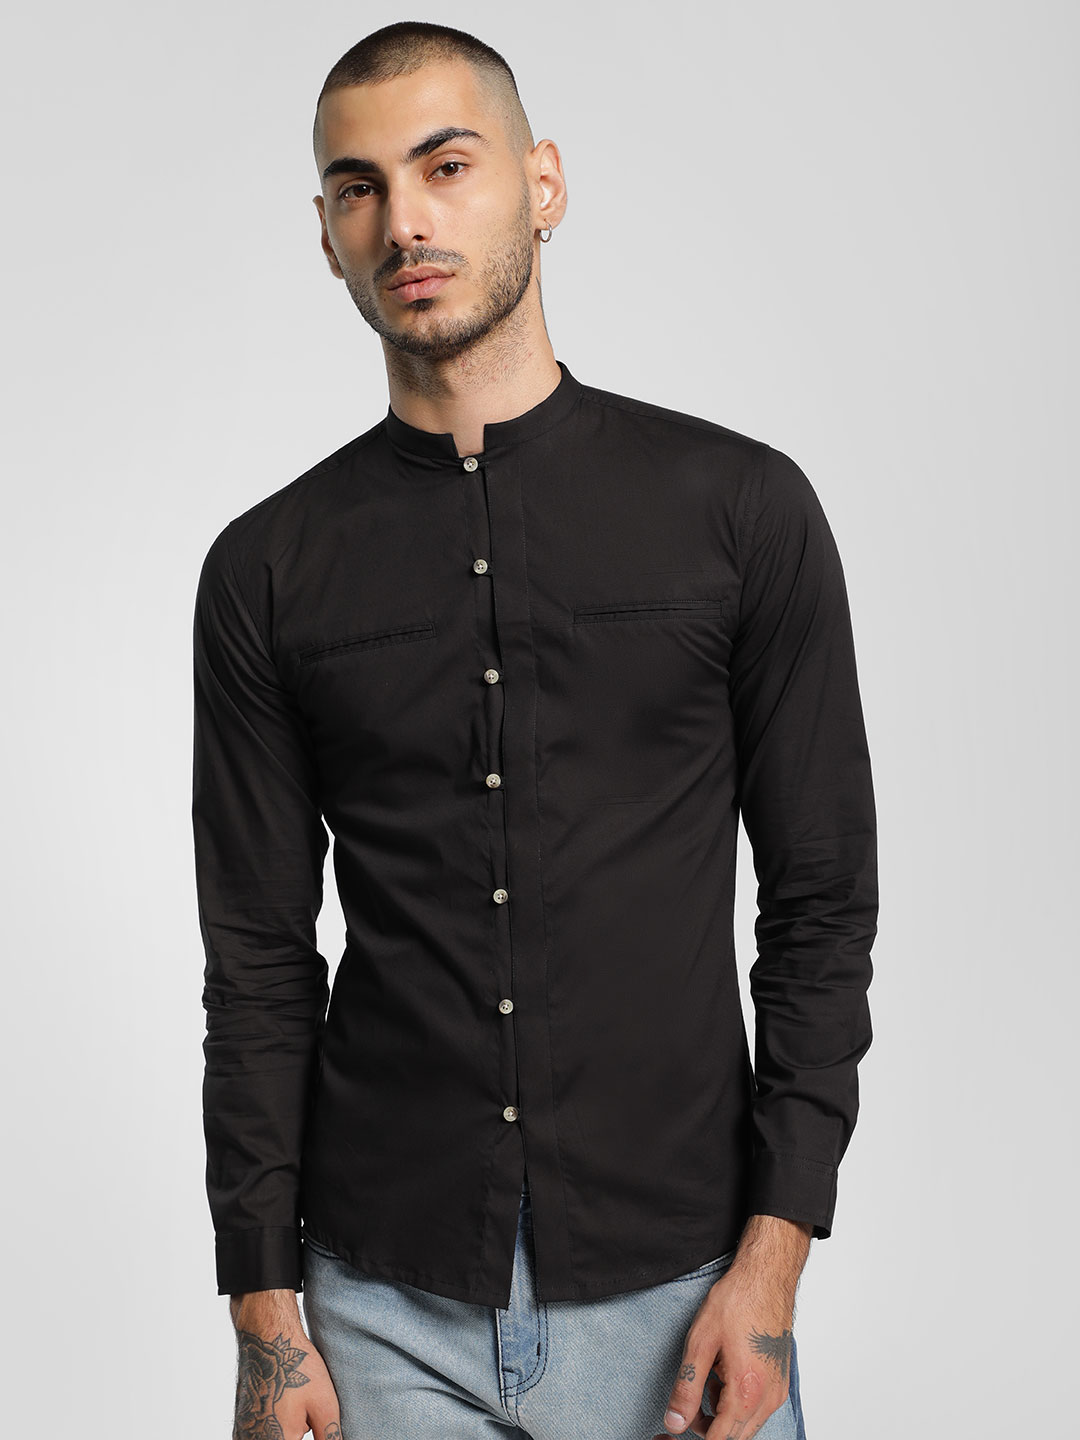 KOOVS Black Mandarin Collar Long Sleeve Shirt 1